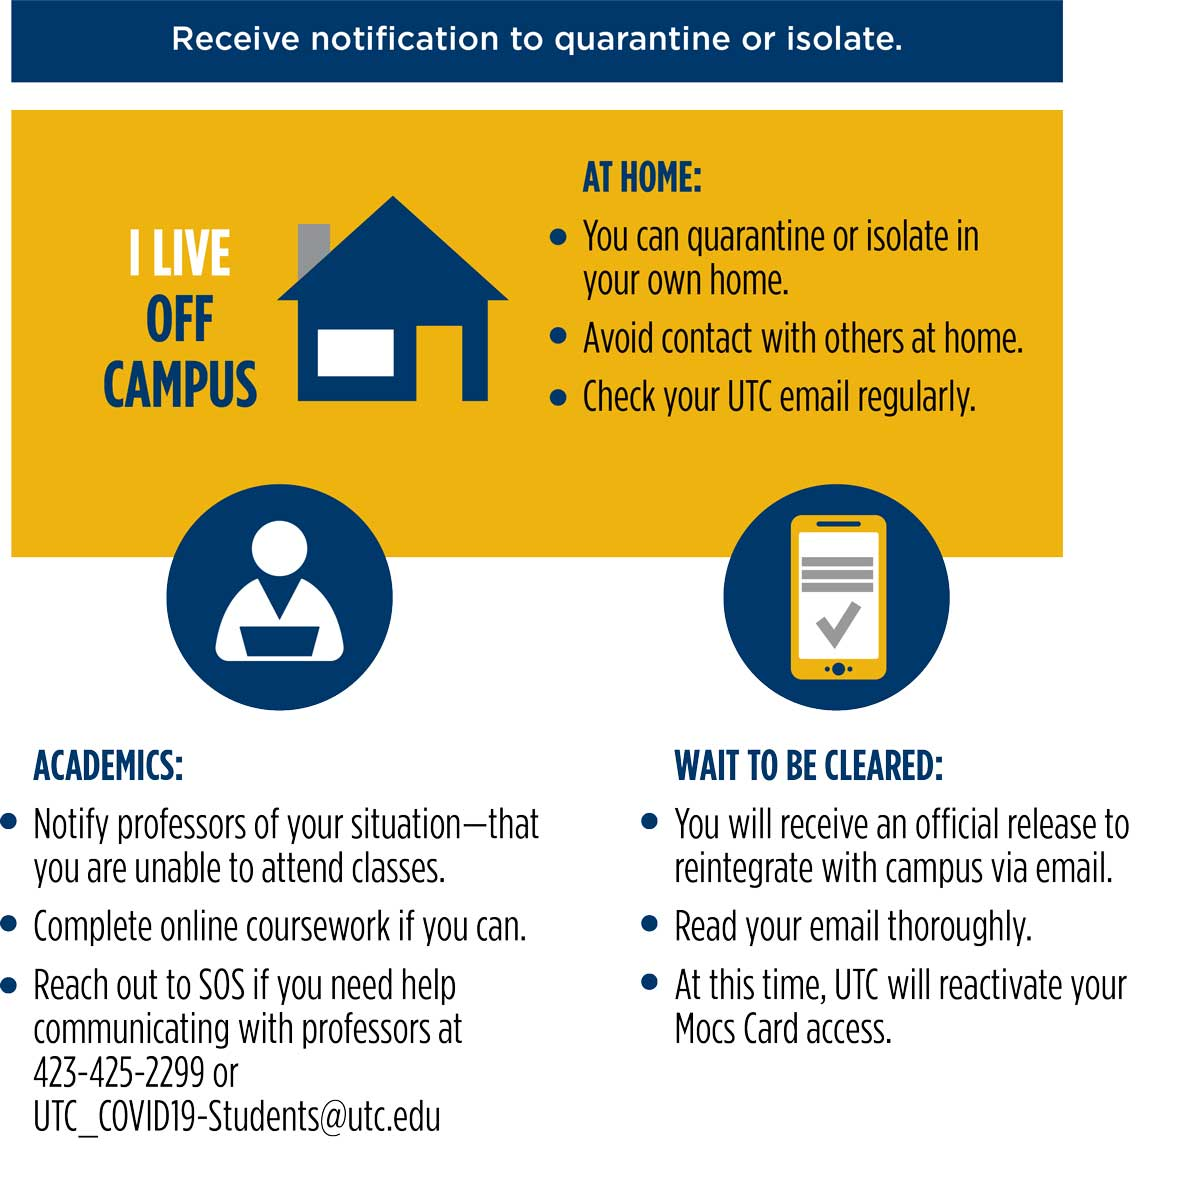 Flow chart describing the quarantine/isolation process for students living off campus, these details are provided on the page below